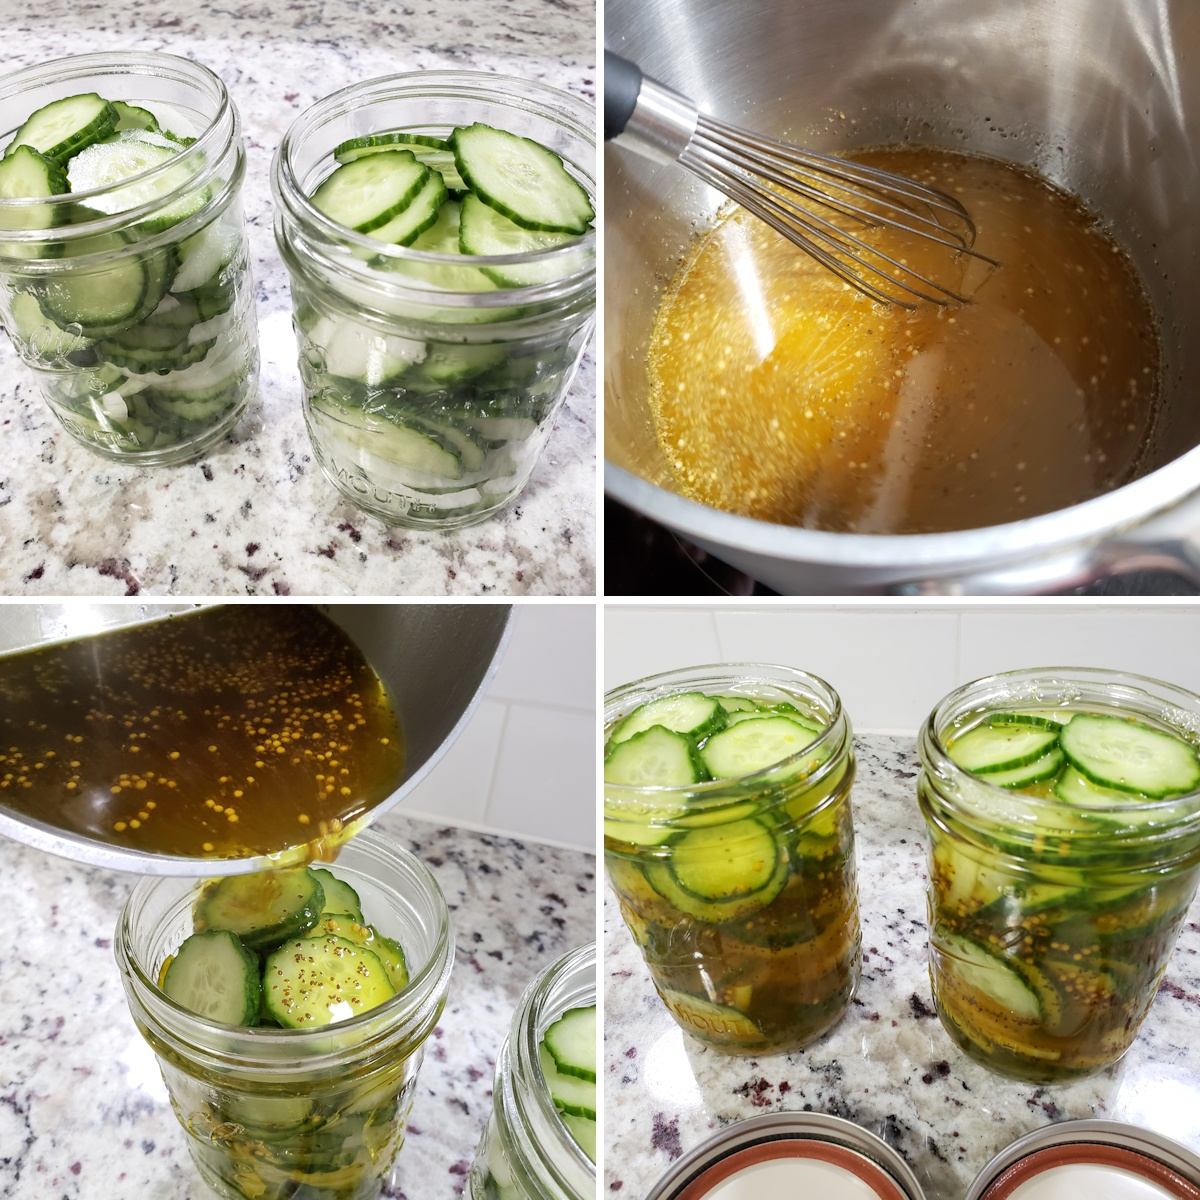 Adding pickles and liquid to mason jars.